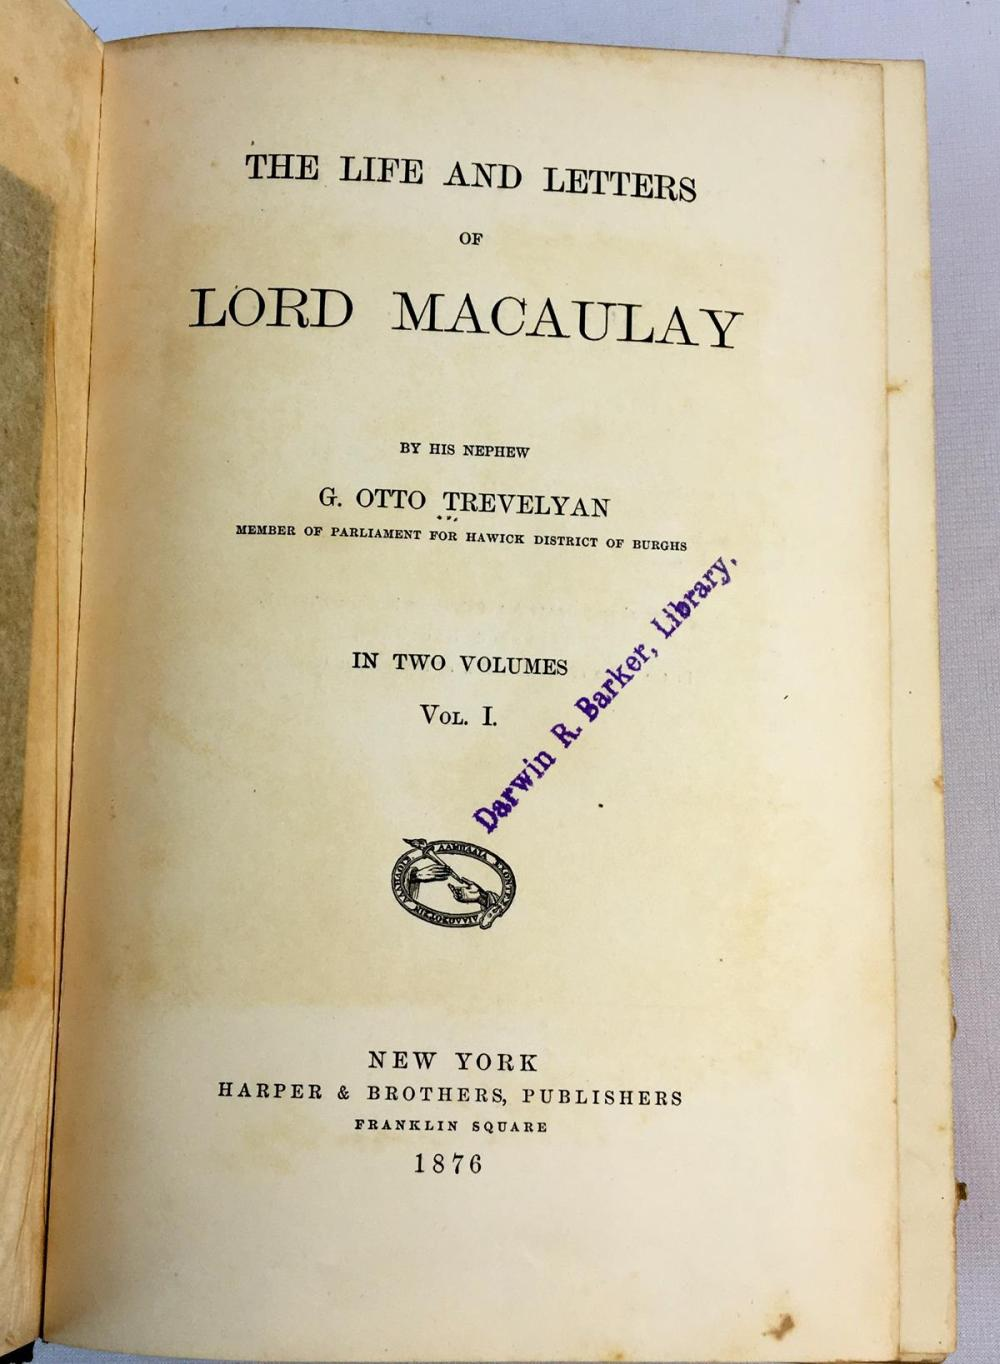 1876 The Life & Letters Of Lord Macaulay 2 Volume Set by G. Otto Trevelyan FIRST EDITION